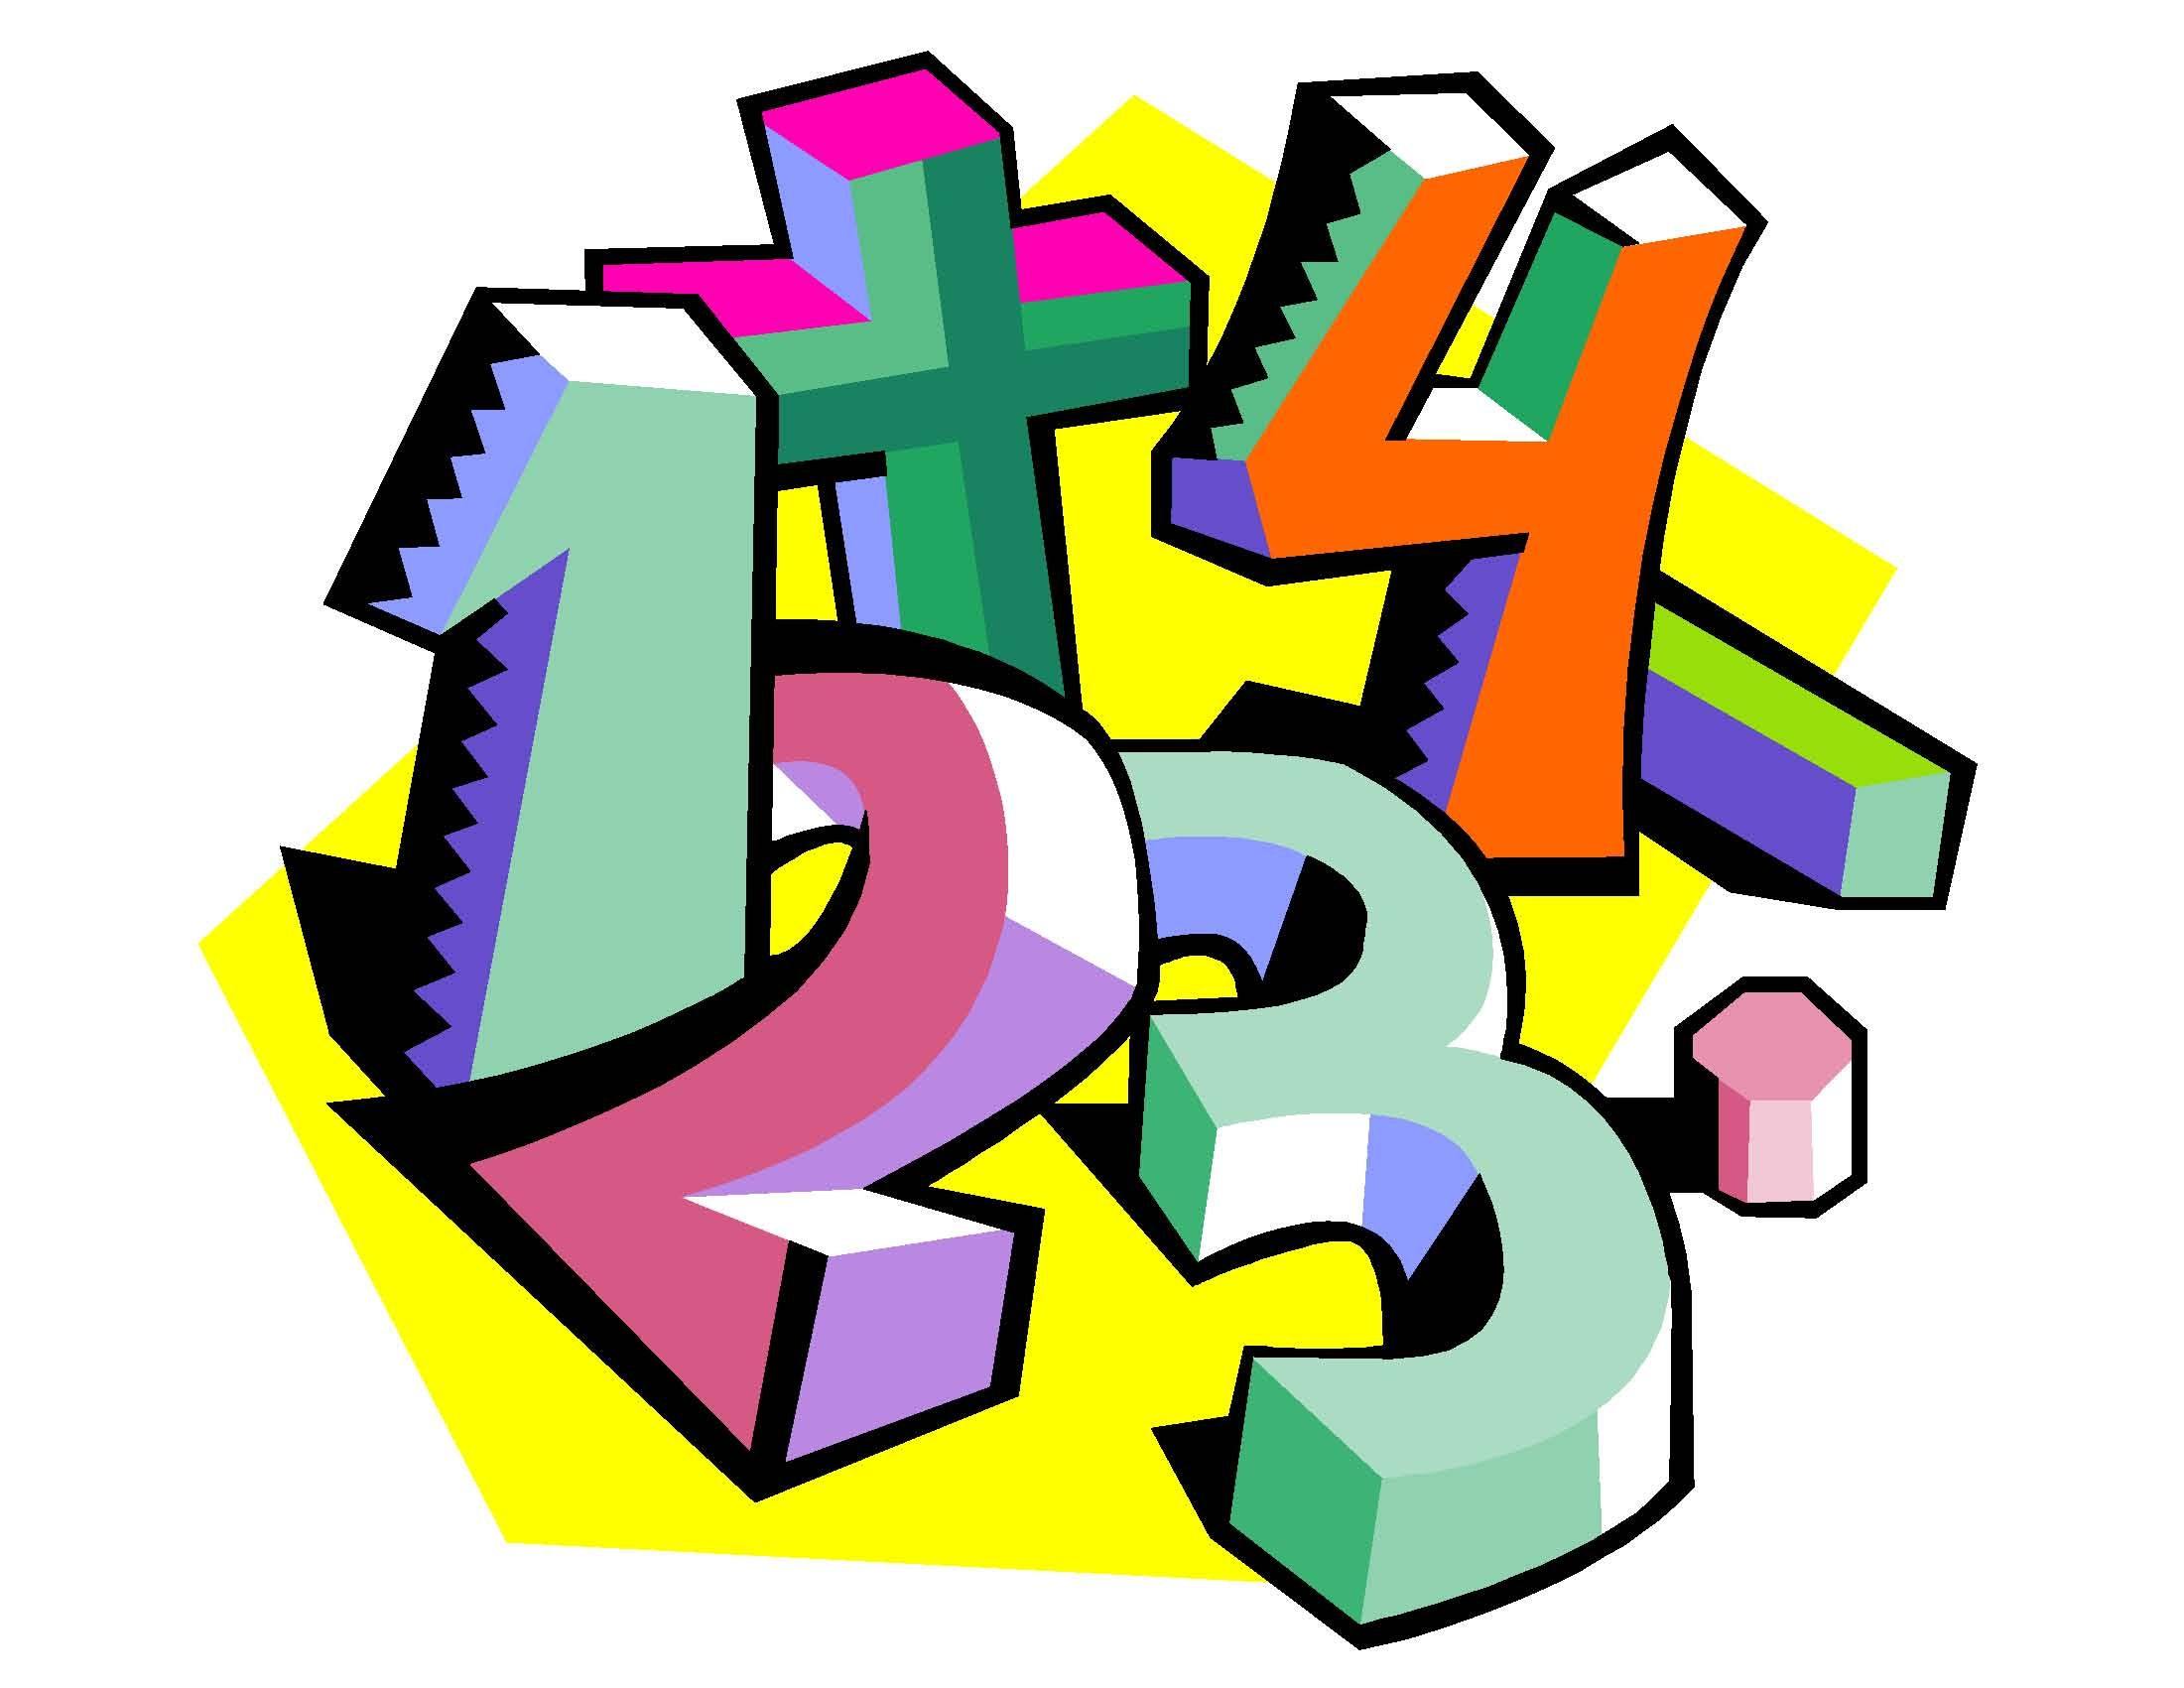 Elementary School Clip Art | Clip art for math ...